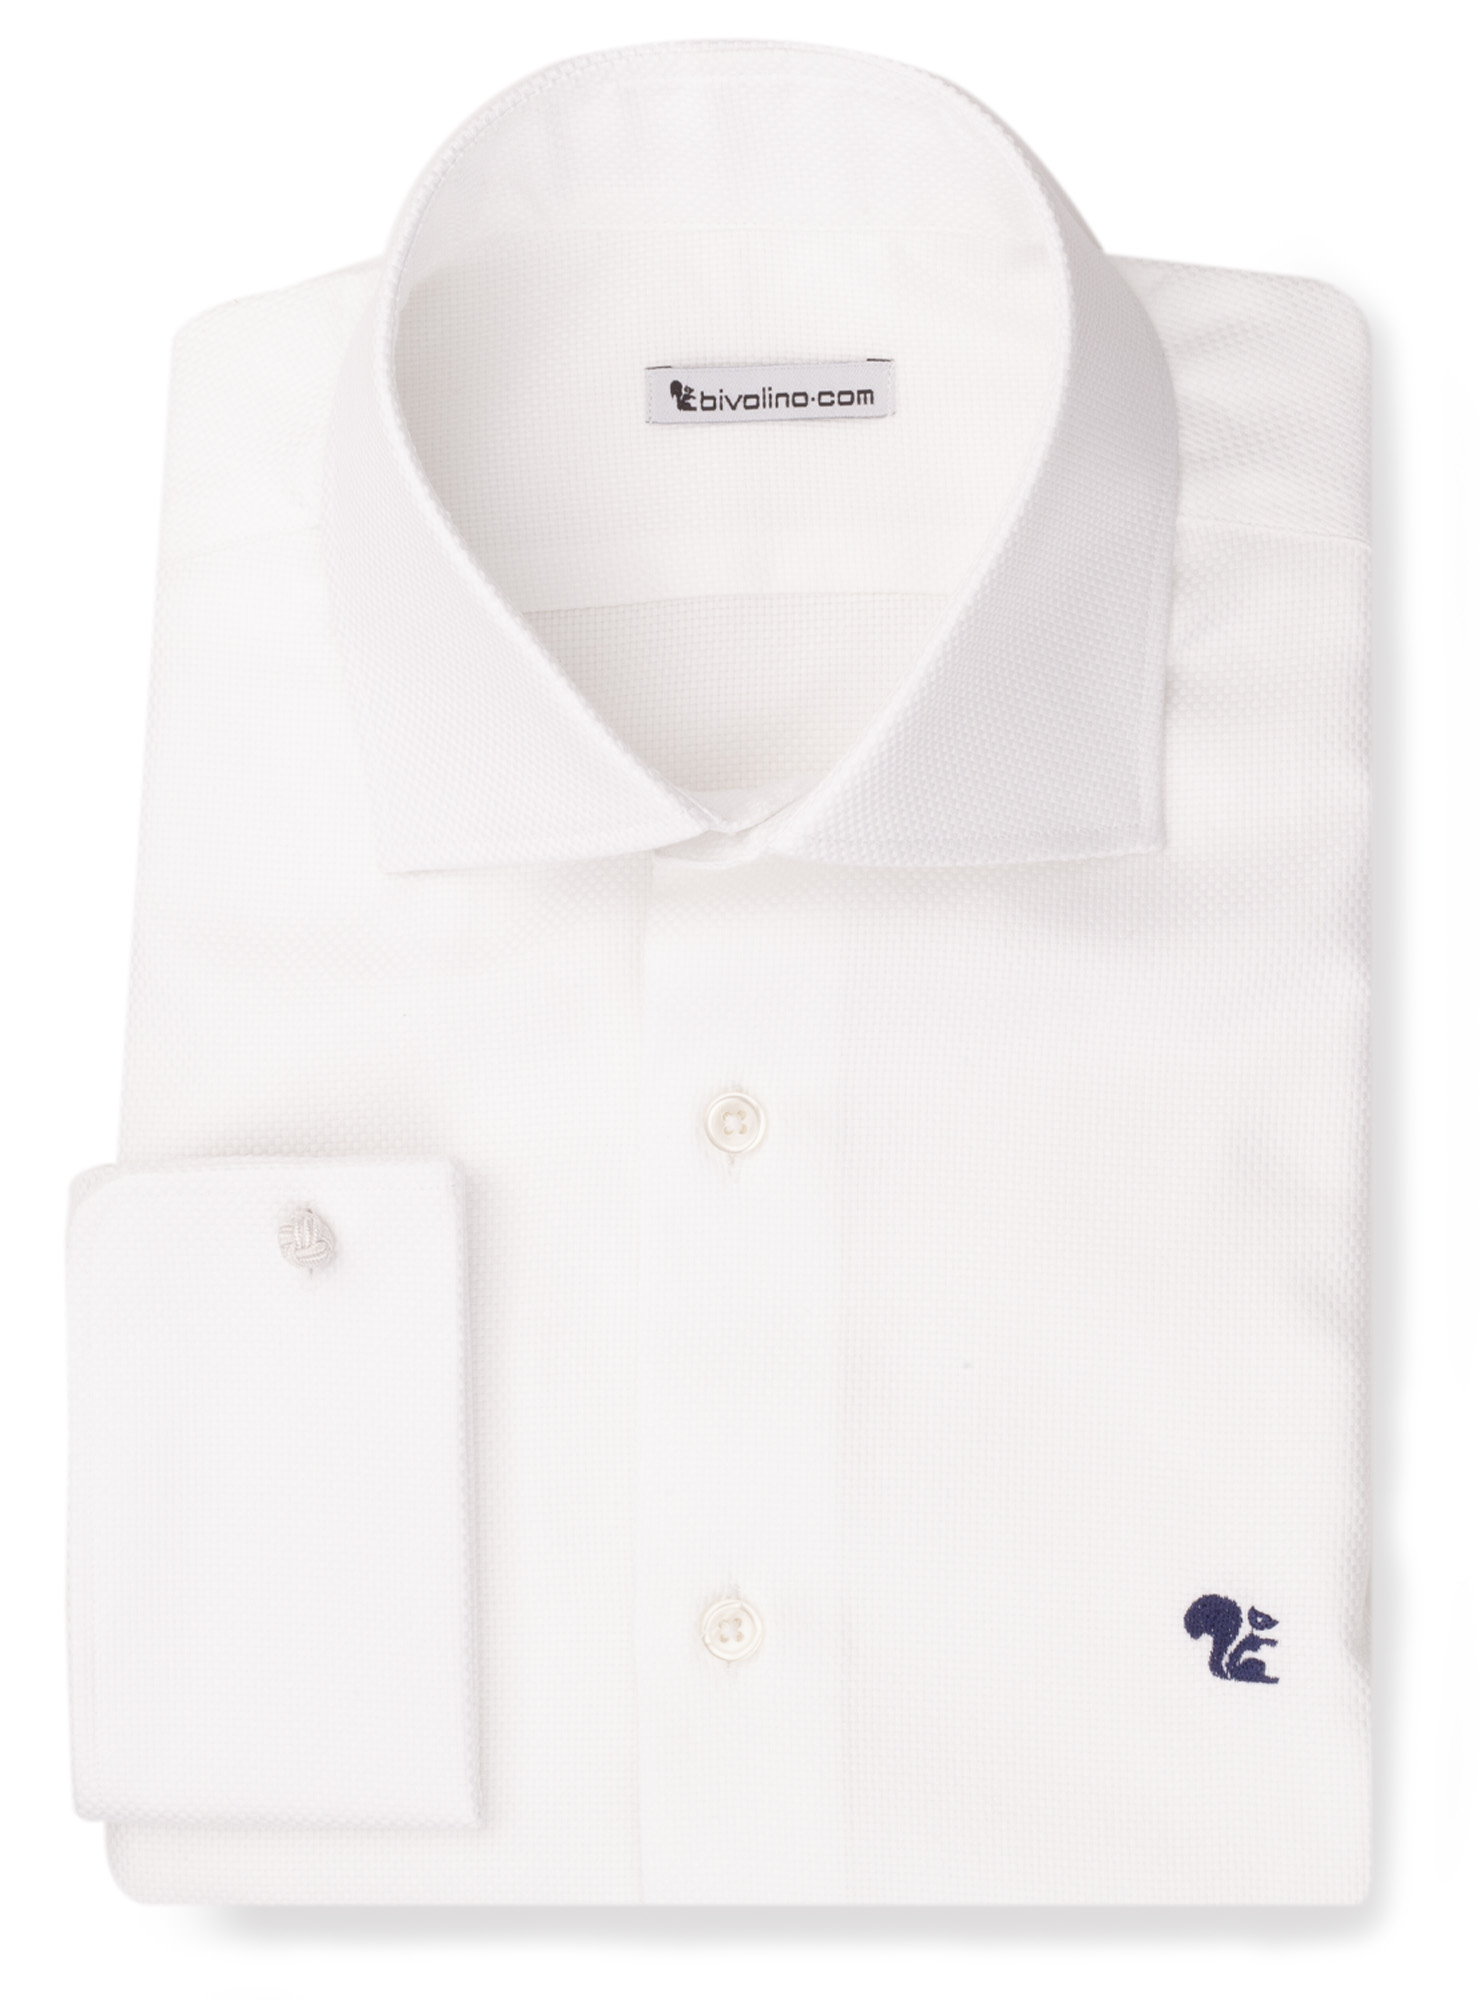 BEDFILIO -  Chemise blanche dobby  - Bedford 1